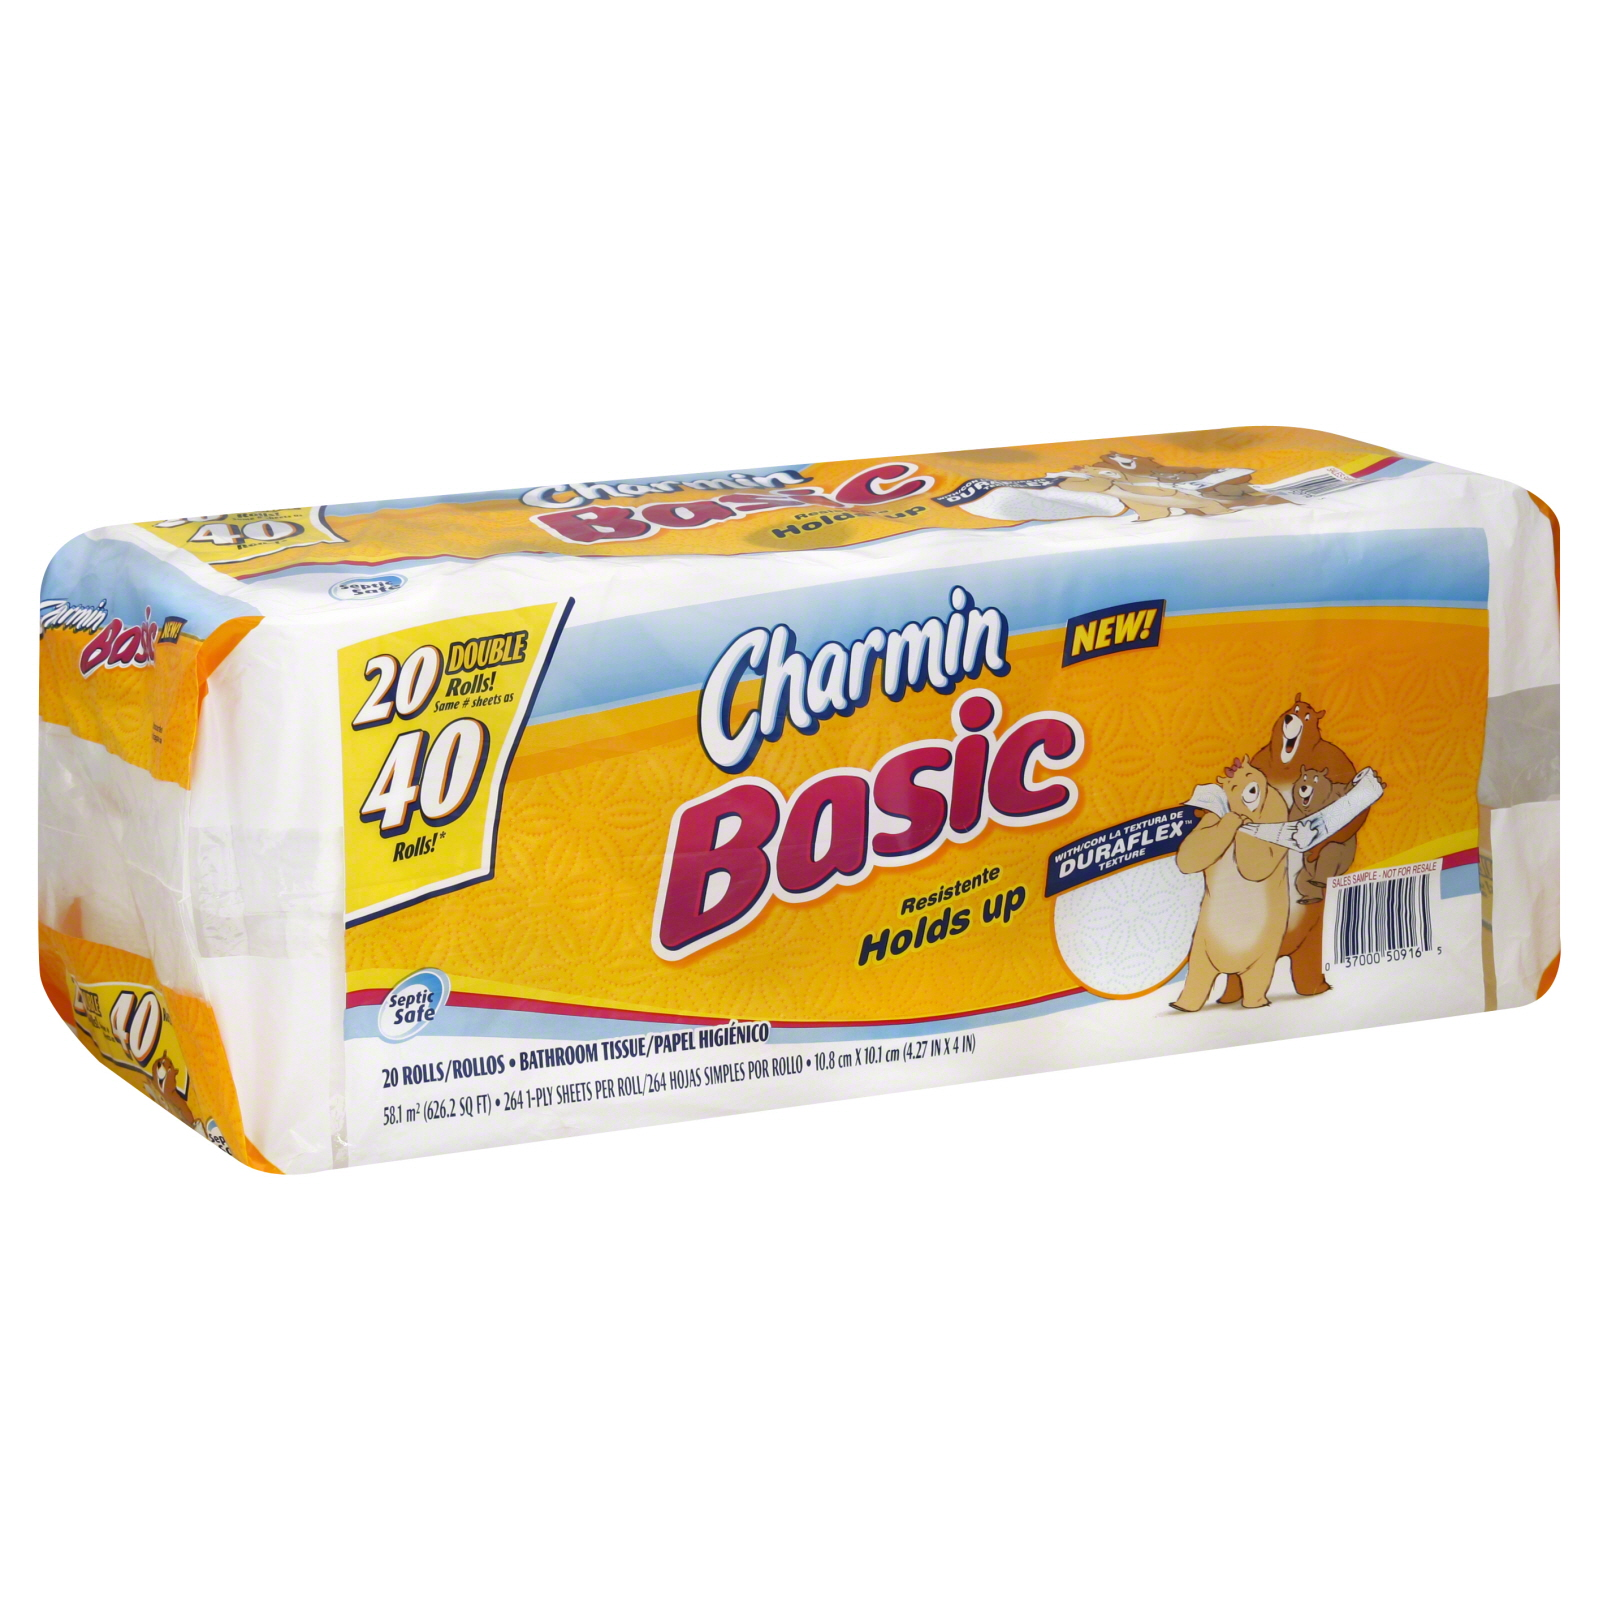 Basic Bathroom Tissue, Double Rolls, Unscented, 1-Ply, 20 rolls                                                                  at mygofer.com